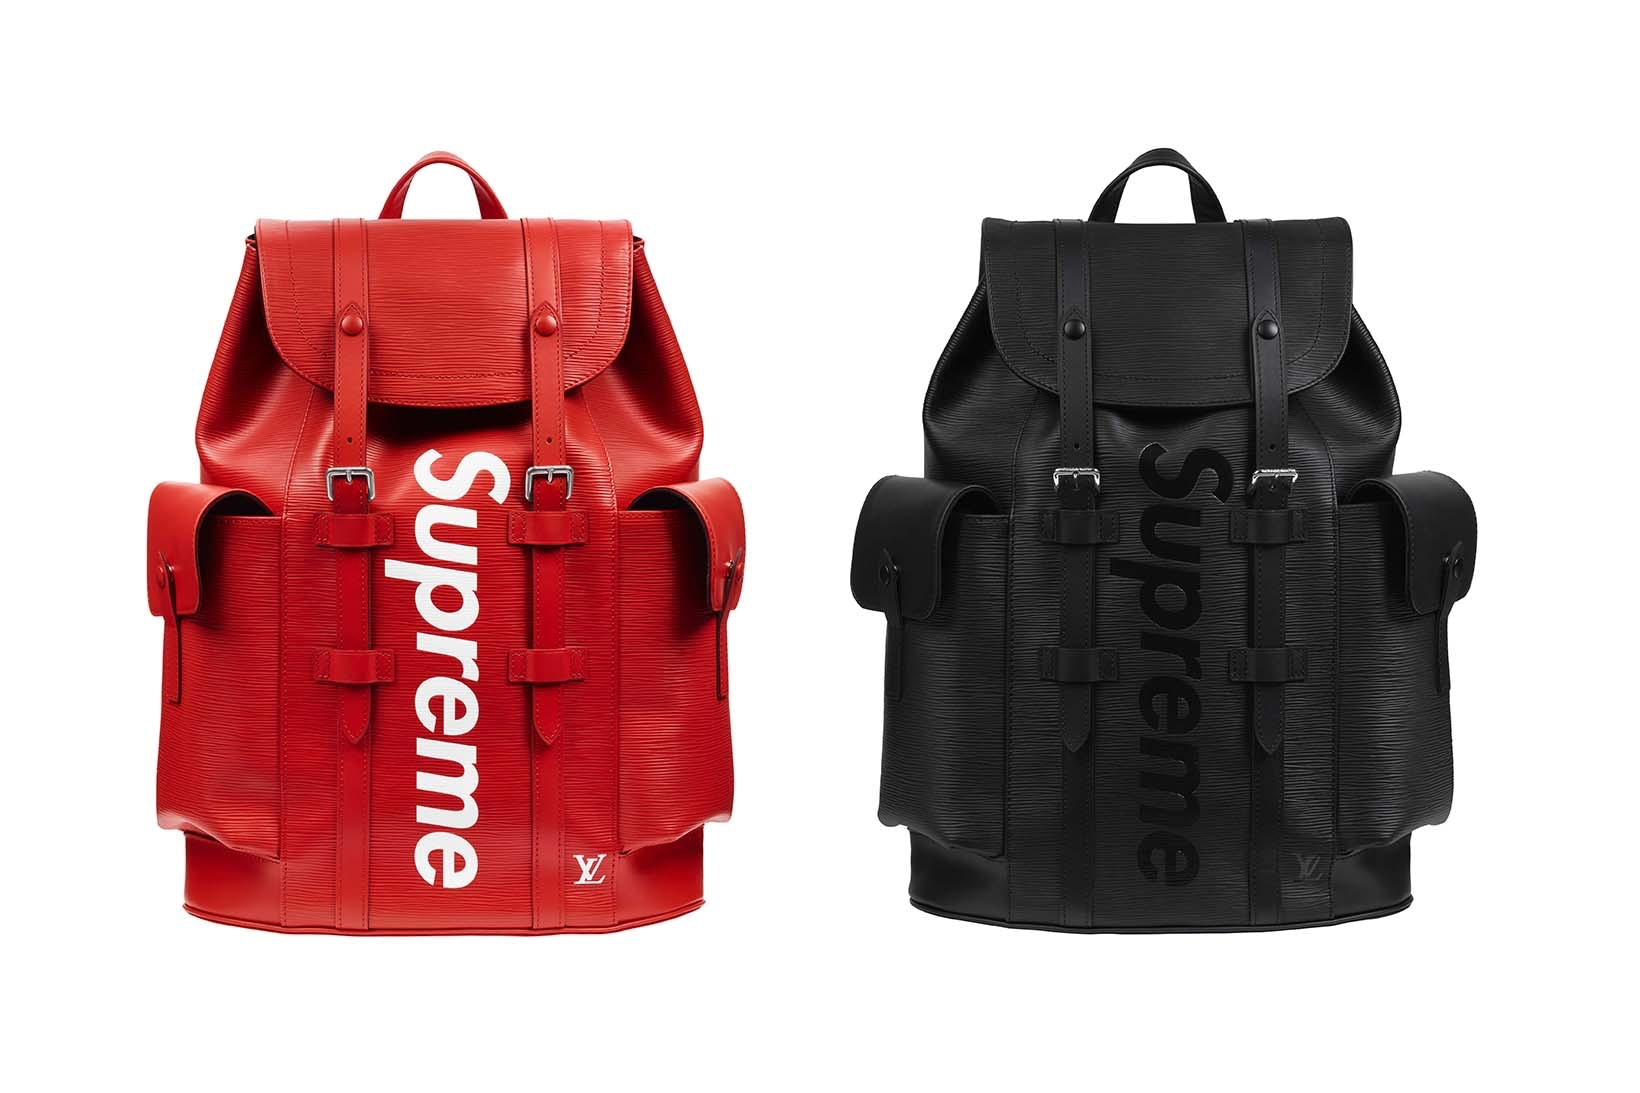 Supreme(シュプリーム)×Louis Vuitton(ルイ・ヴィトン) / クリストファー バックパック(Christopher Backpack)